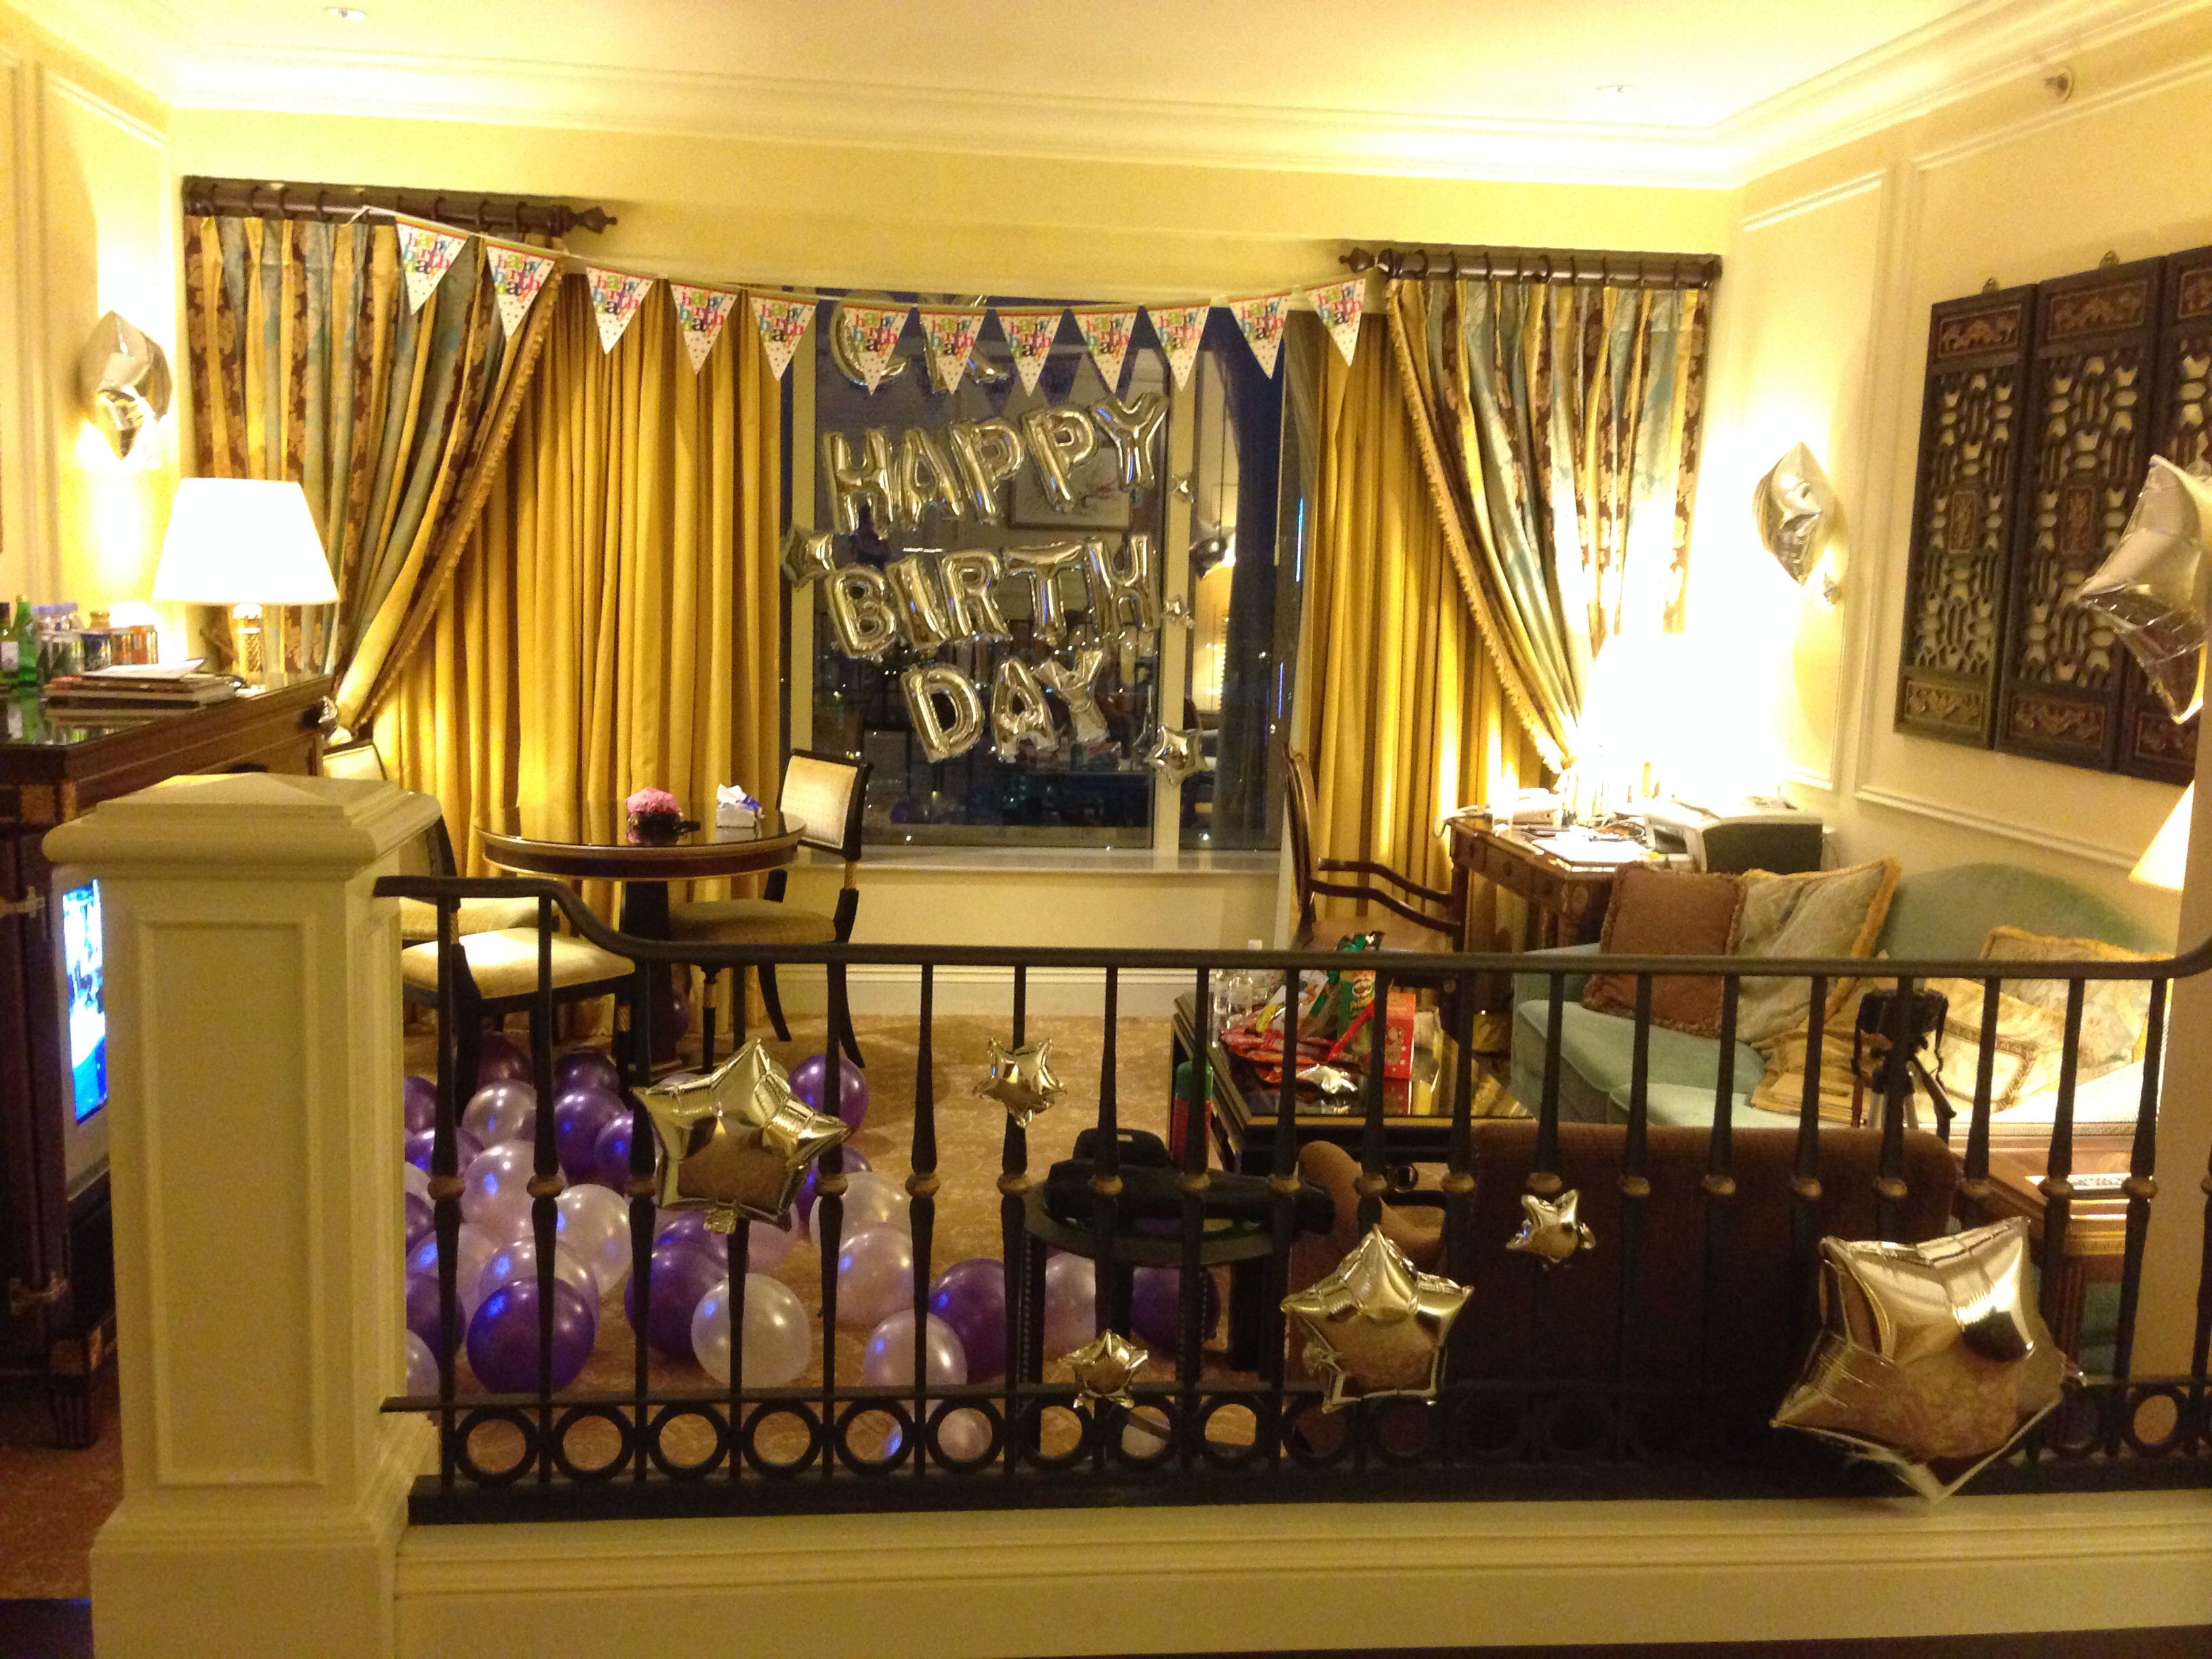 decorate a hotel room for birthday parties | Ideas | Pinterest ...